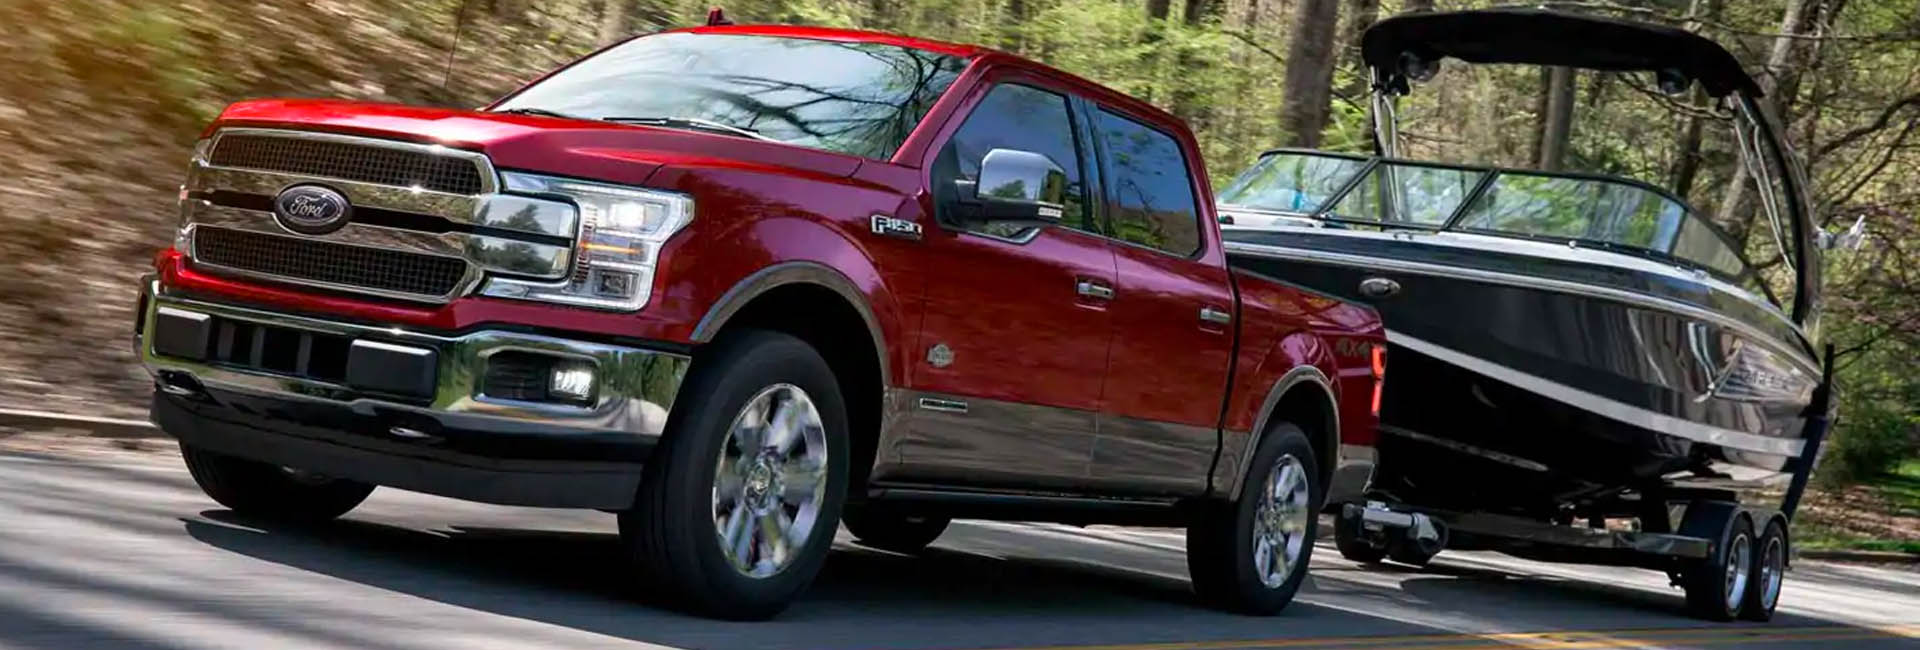 2019 Ford F-150 Diesel For Sale